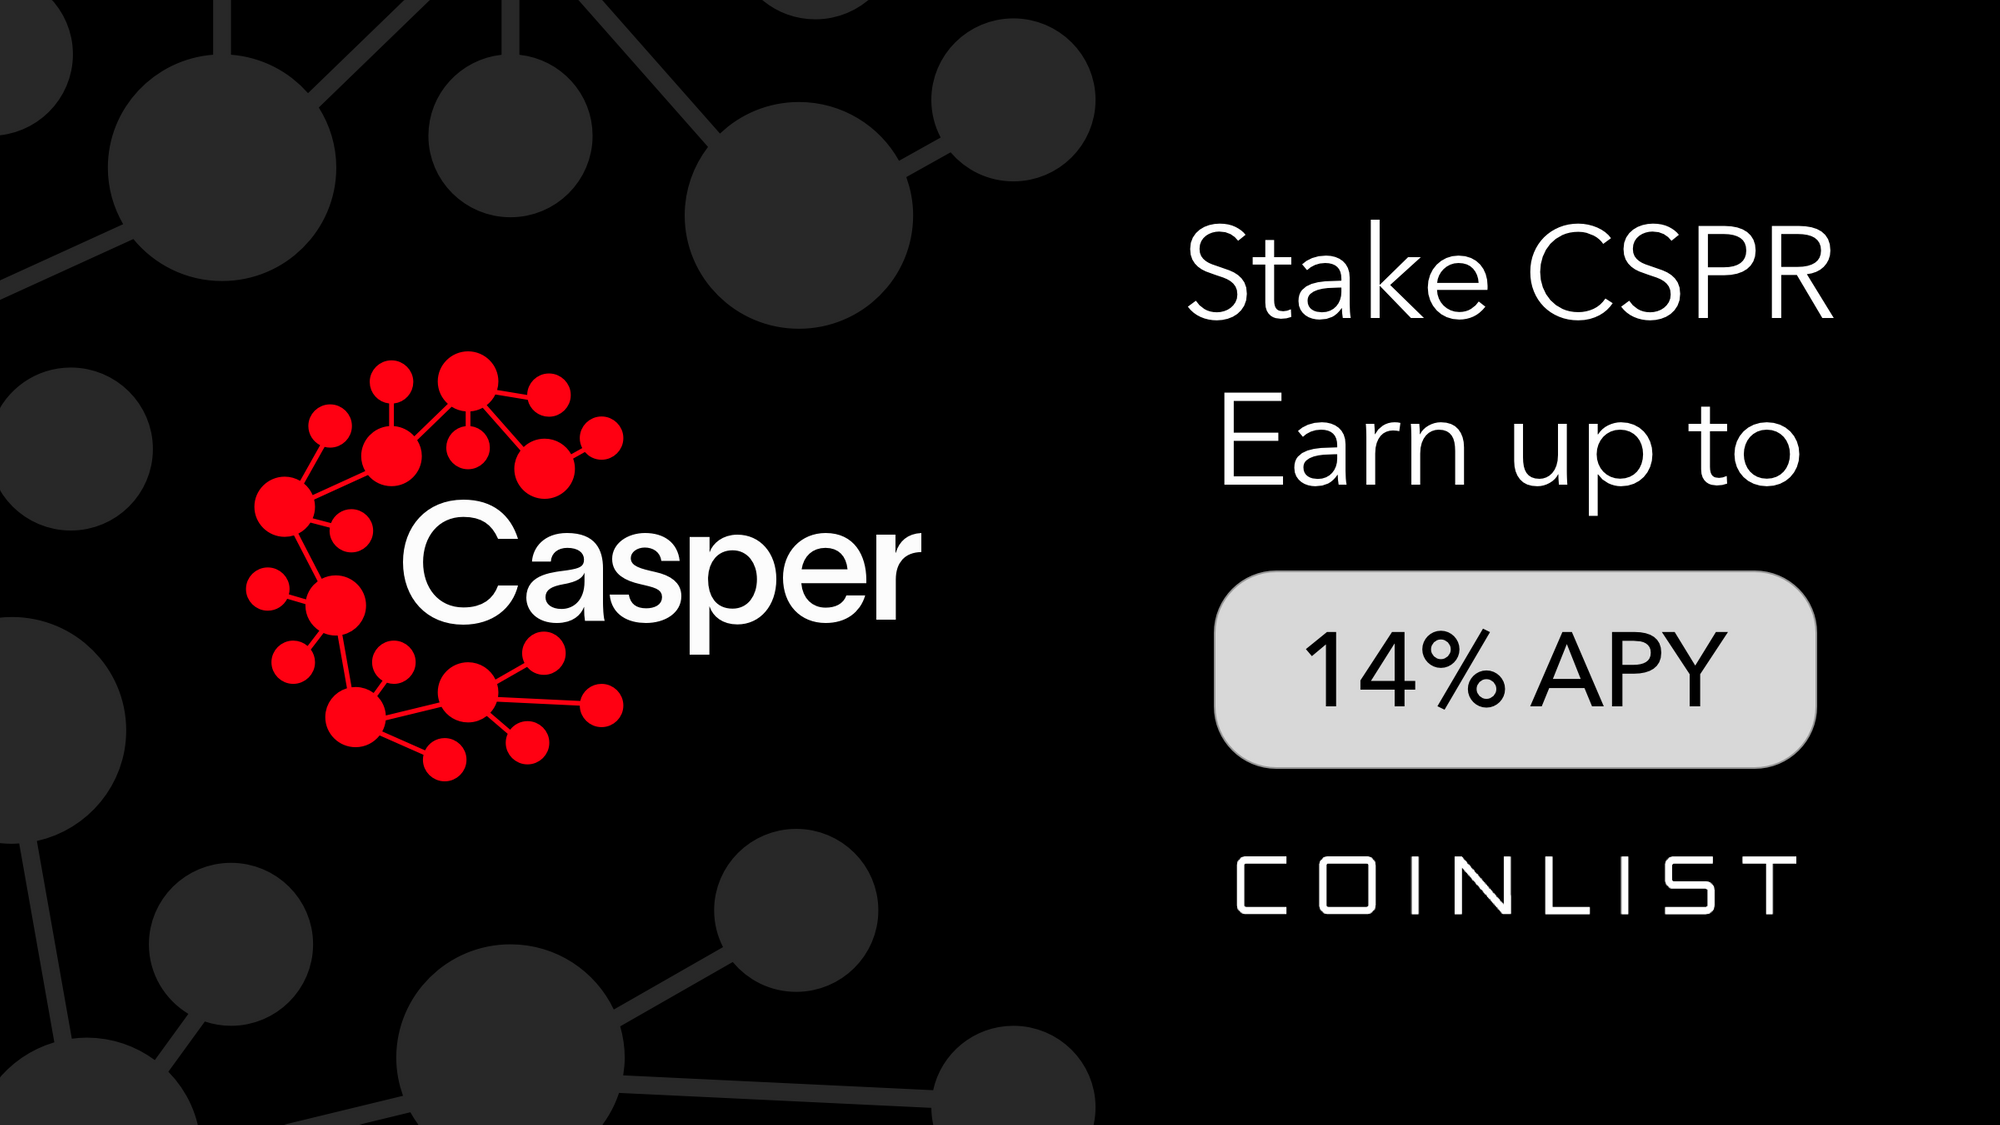 Stake Casper (CSPR) on CoinList and Earn Rewards up to 14% APY in Rewards